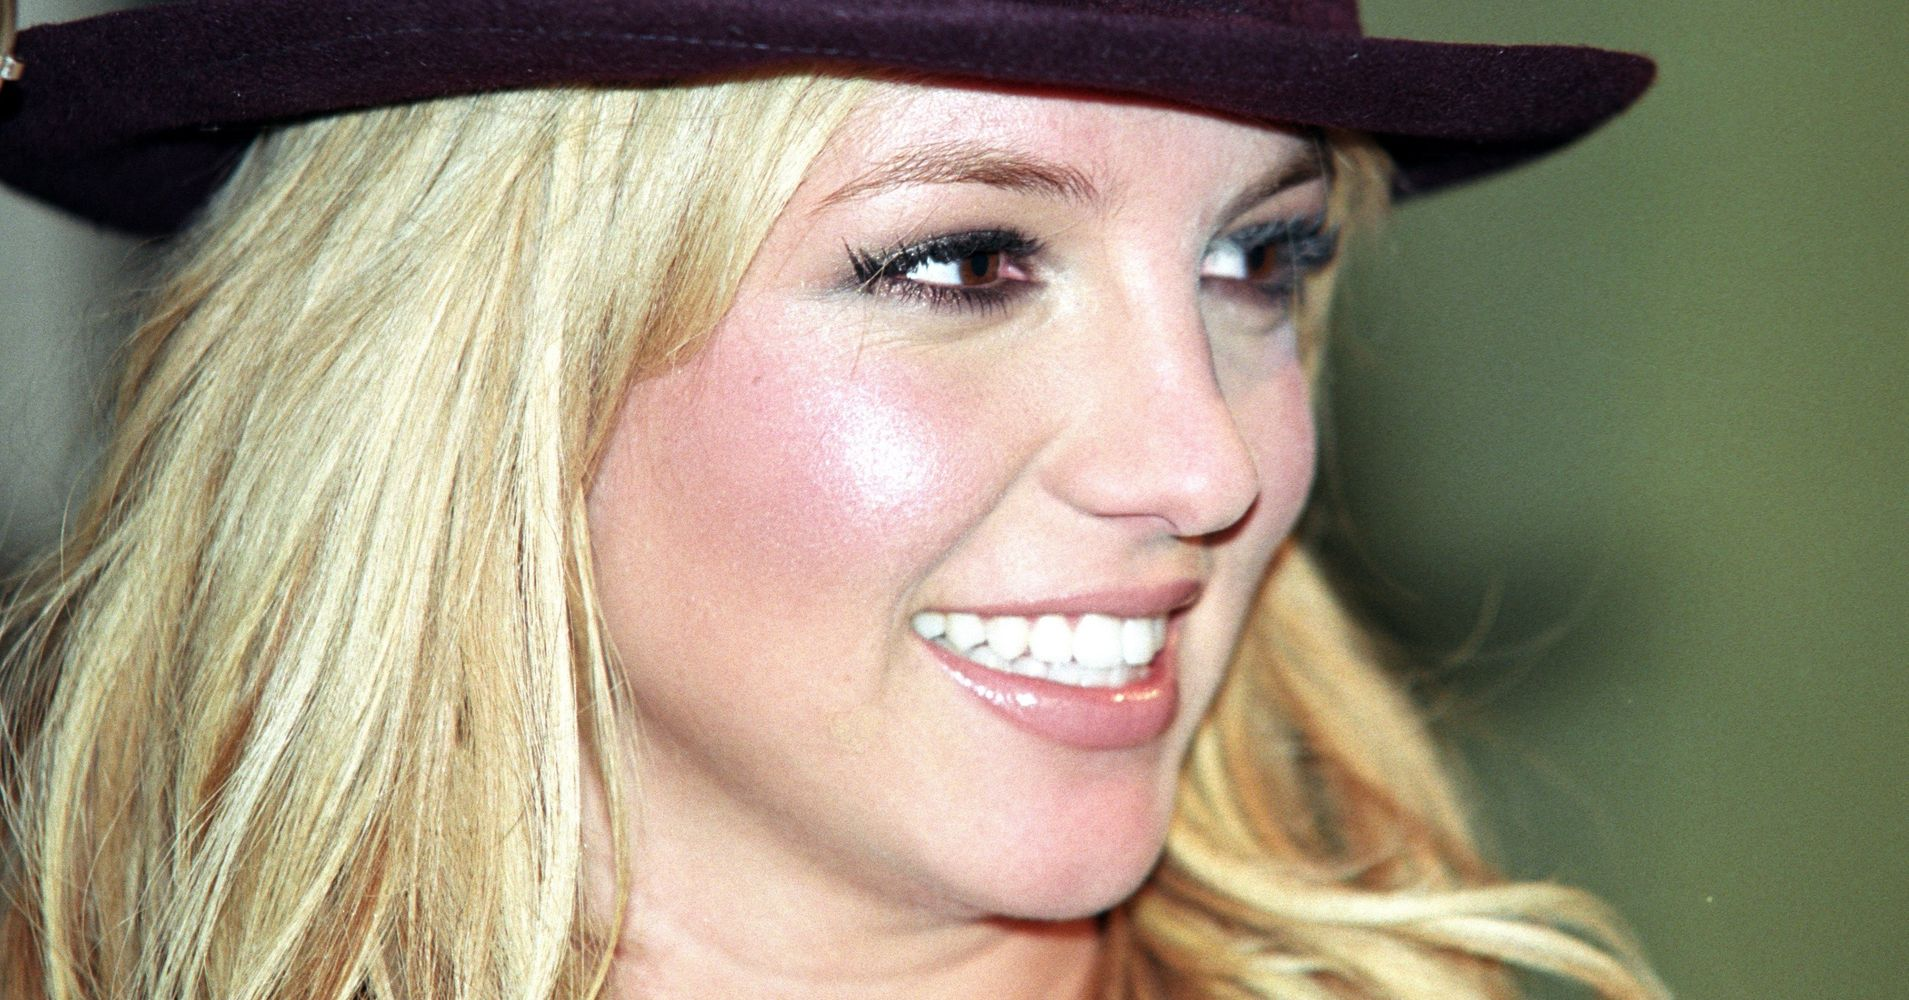 Russian Malware Operation Linked To Britney Spears